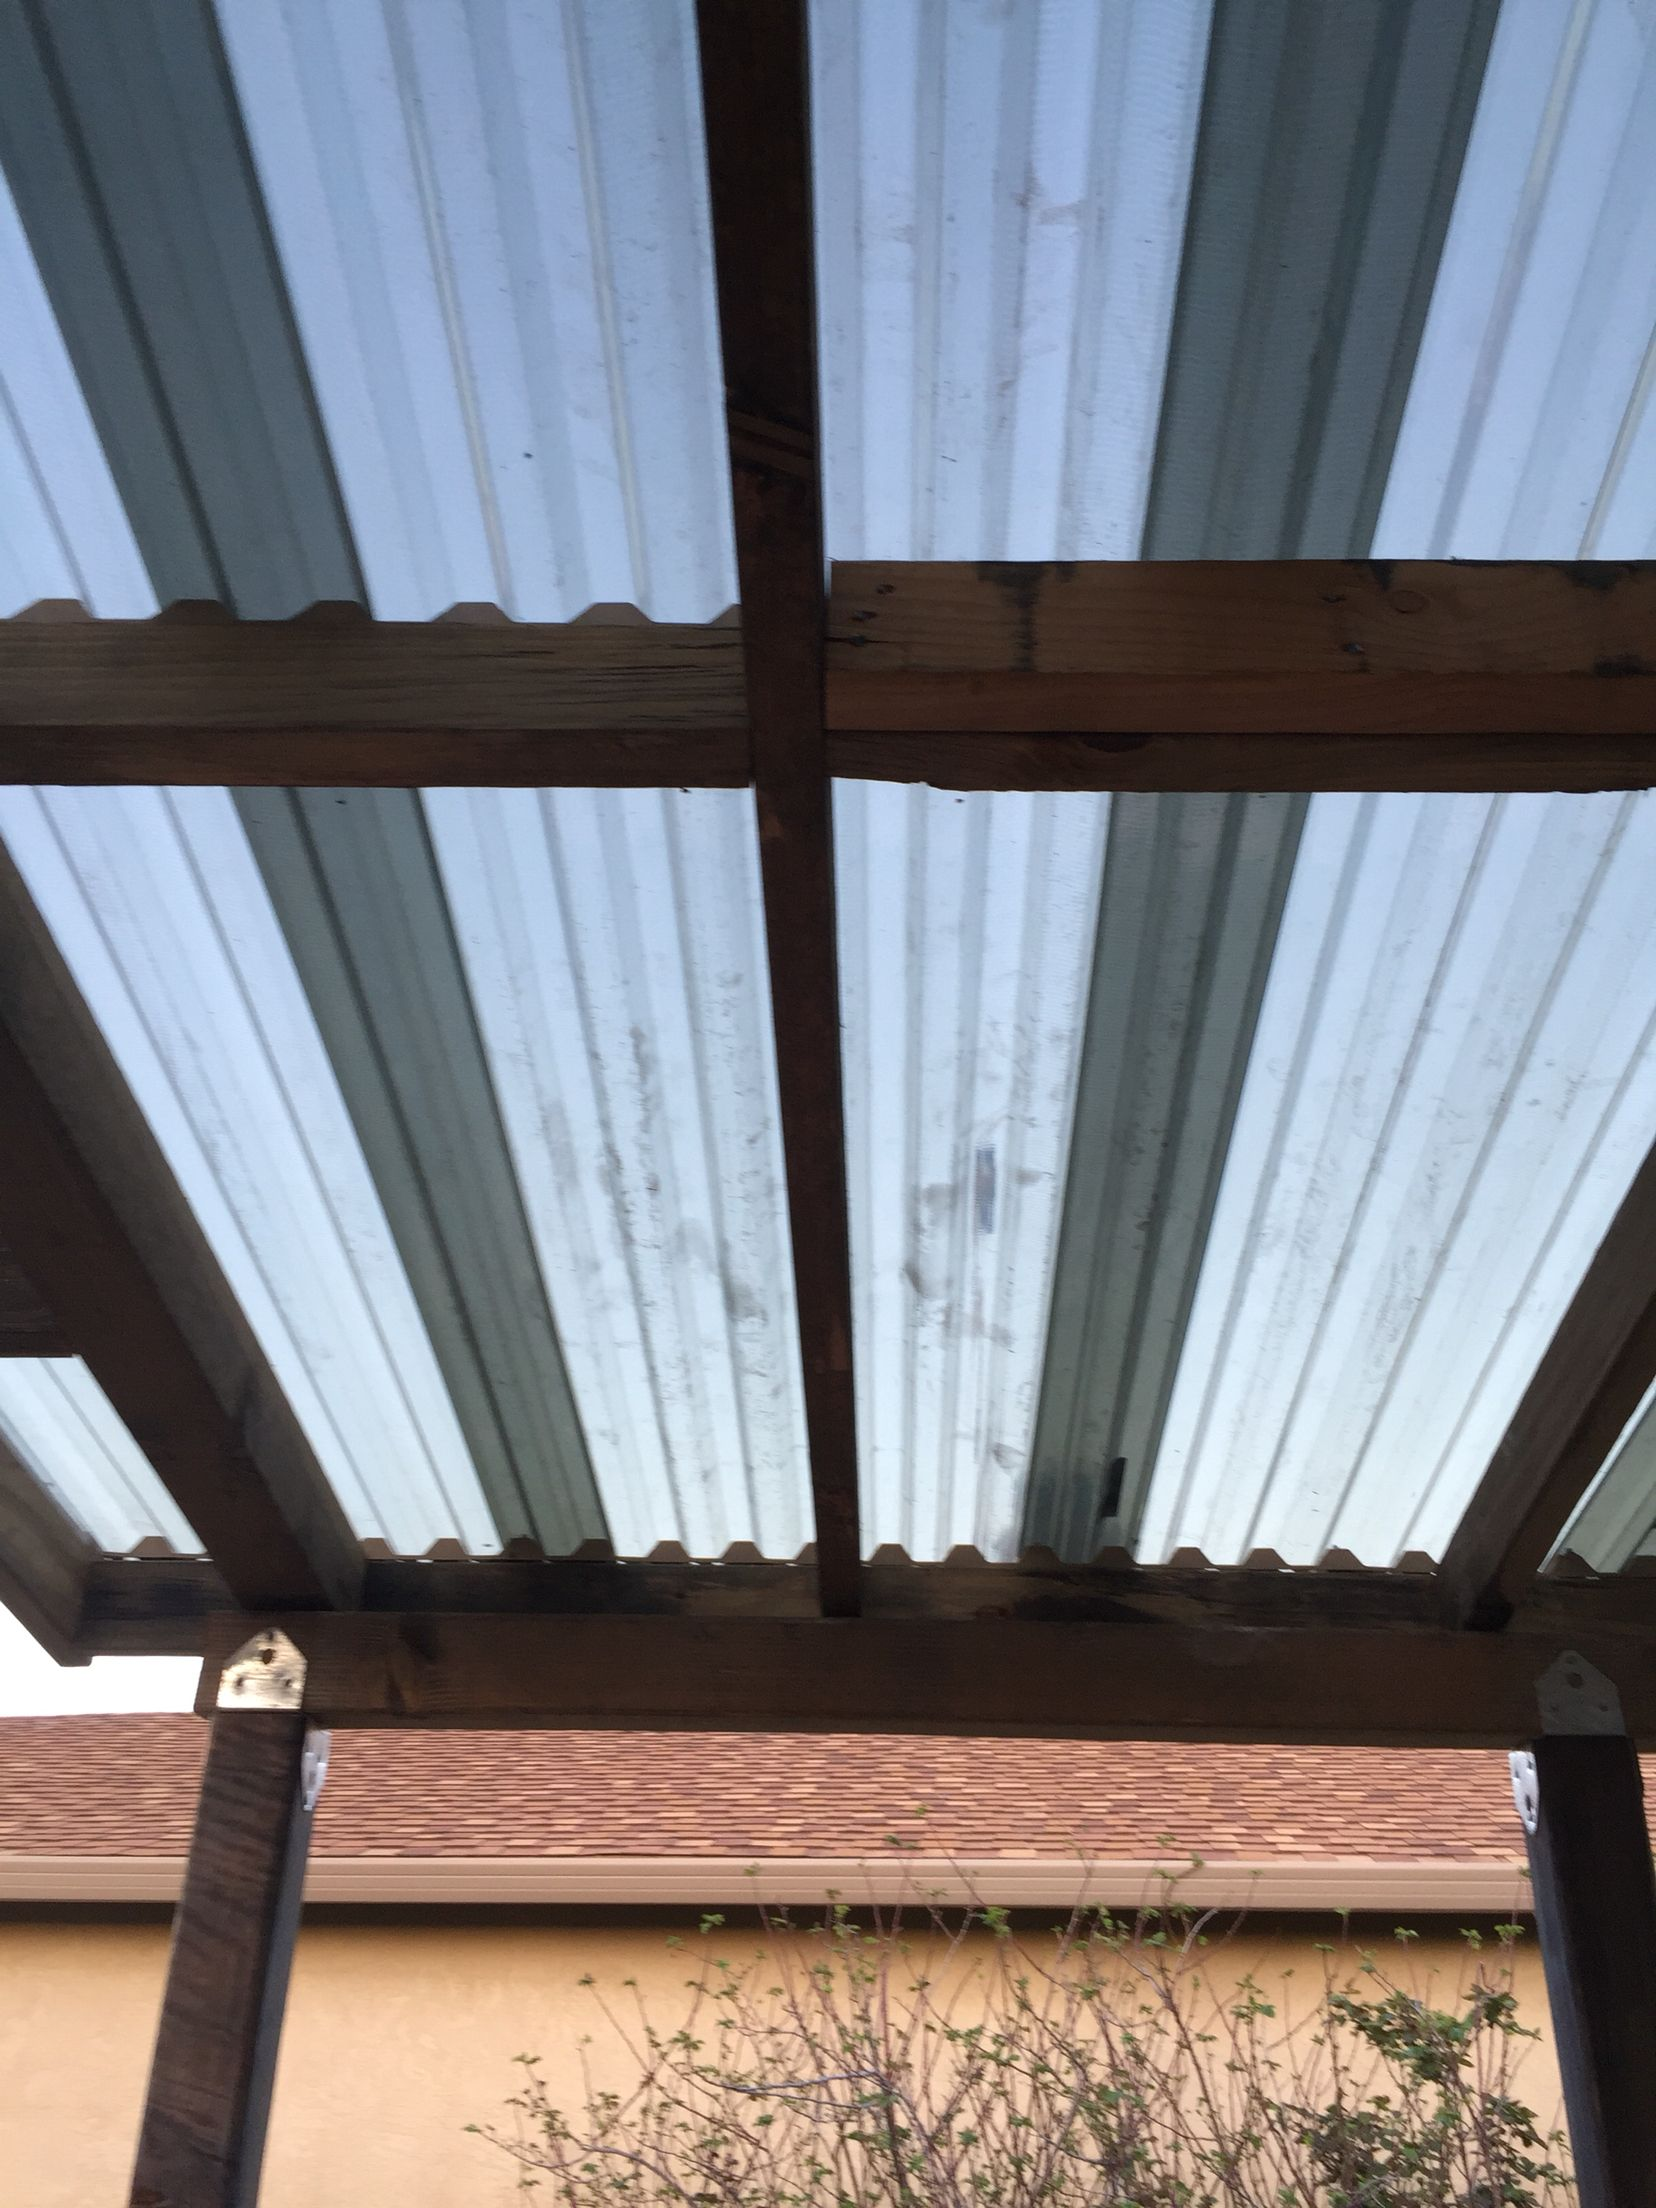 Roof Is Great I Used Suntuf Solar Grey Color Which Allows 35 Of Sunlight To Come Through The Roo Carport Canopy Pergola With Roof Christmas Village Houses